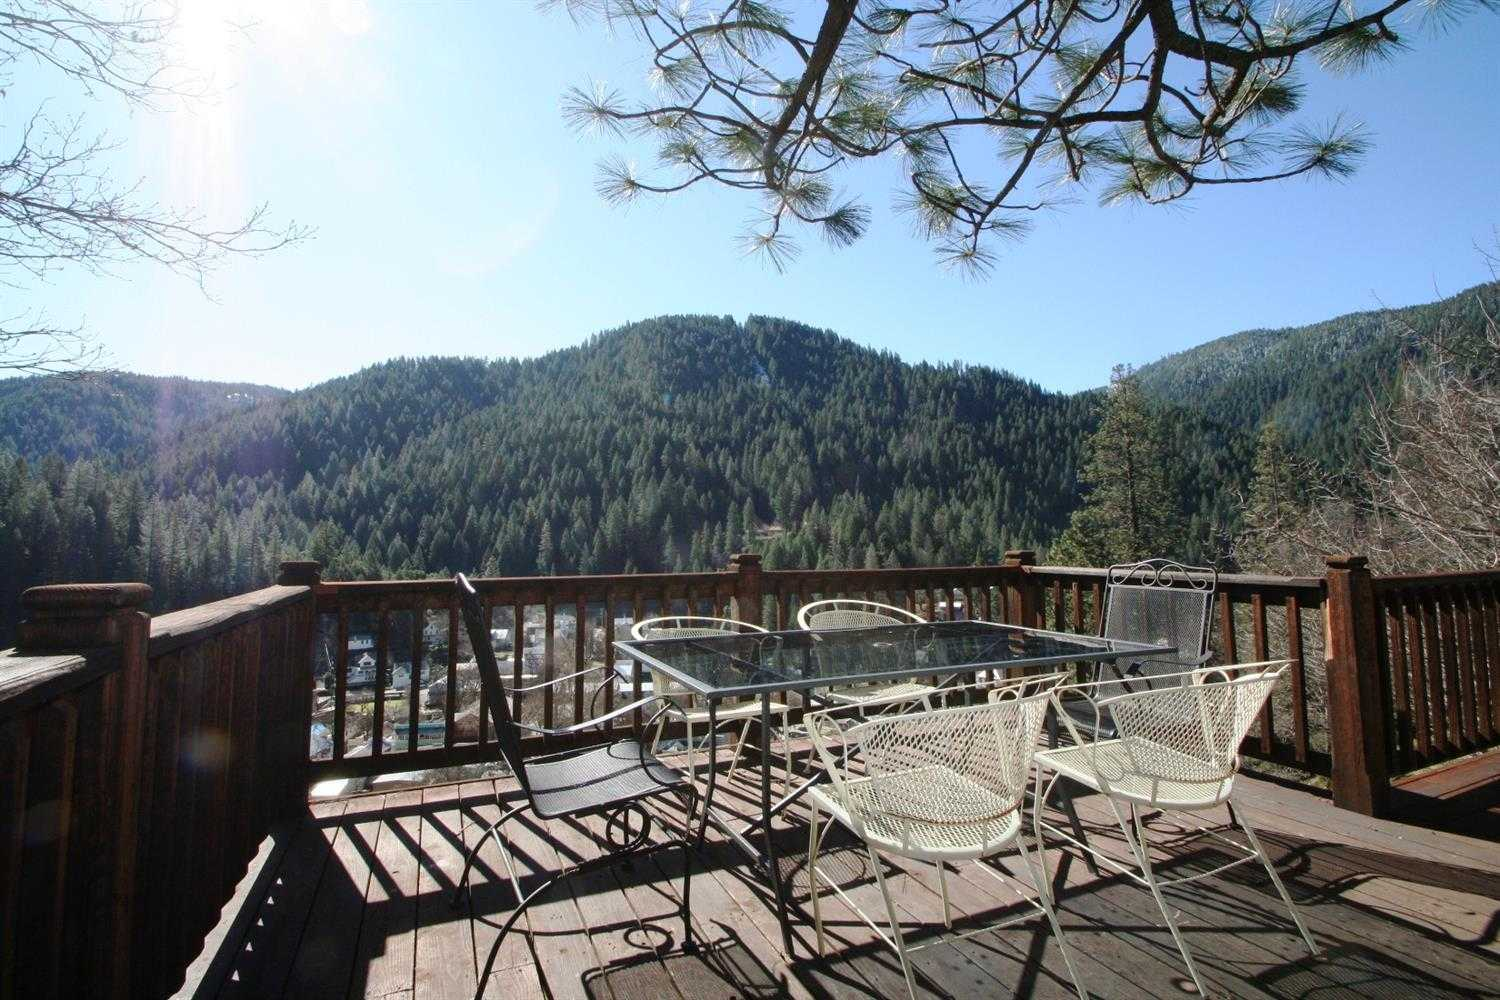 $289,900 - 4Br/2Ba -  for Sale in Town / Downieville, Downieville